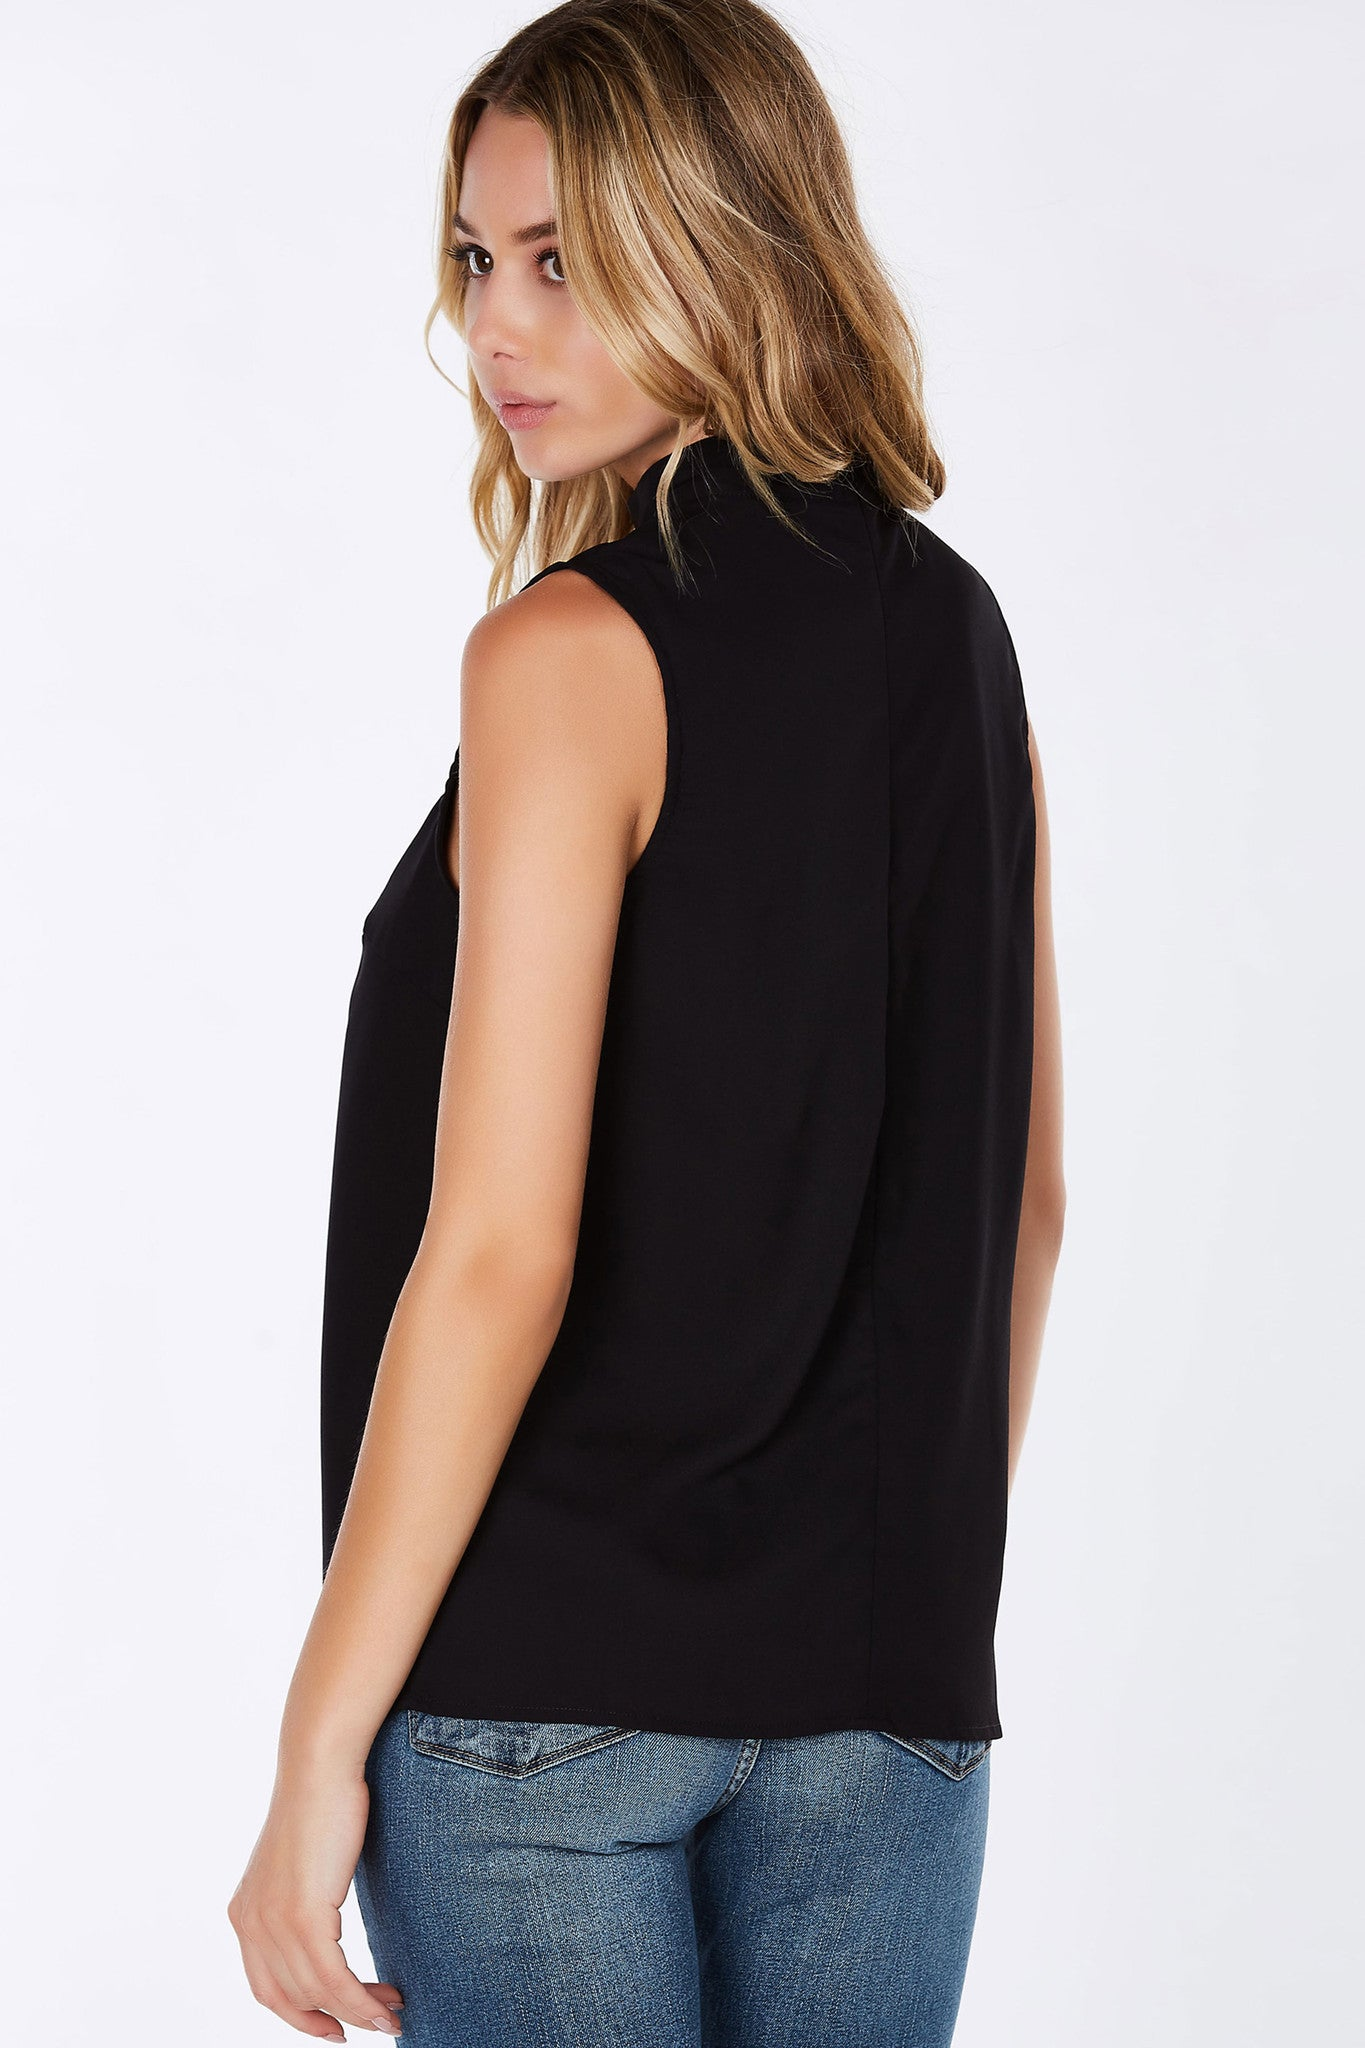 Get the city girl look with this chic sleeveless top. Mock neck with a plunging cut out in front, you'll definitely hold everyone's attention in it! Hidden zipper in the back for a seamless finish. Pair with trousers for a business look!